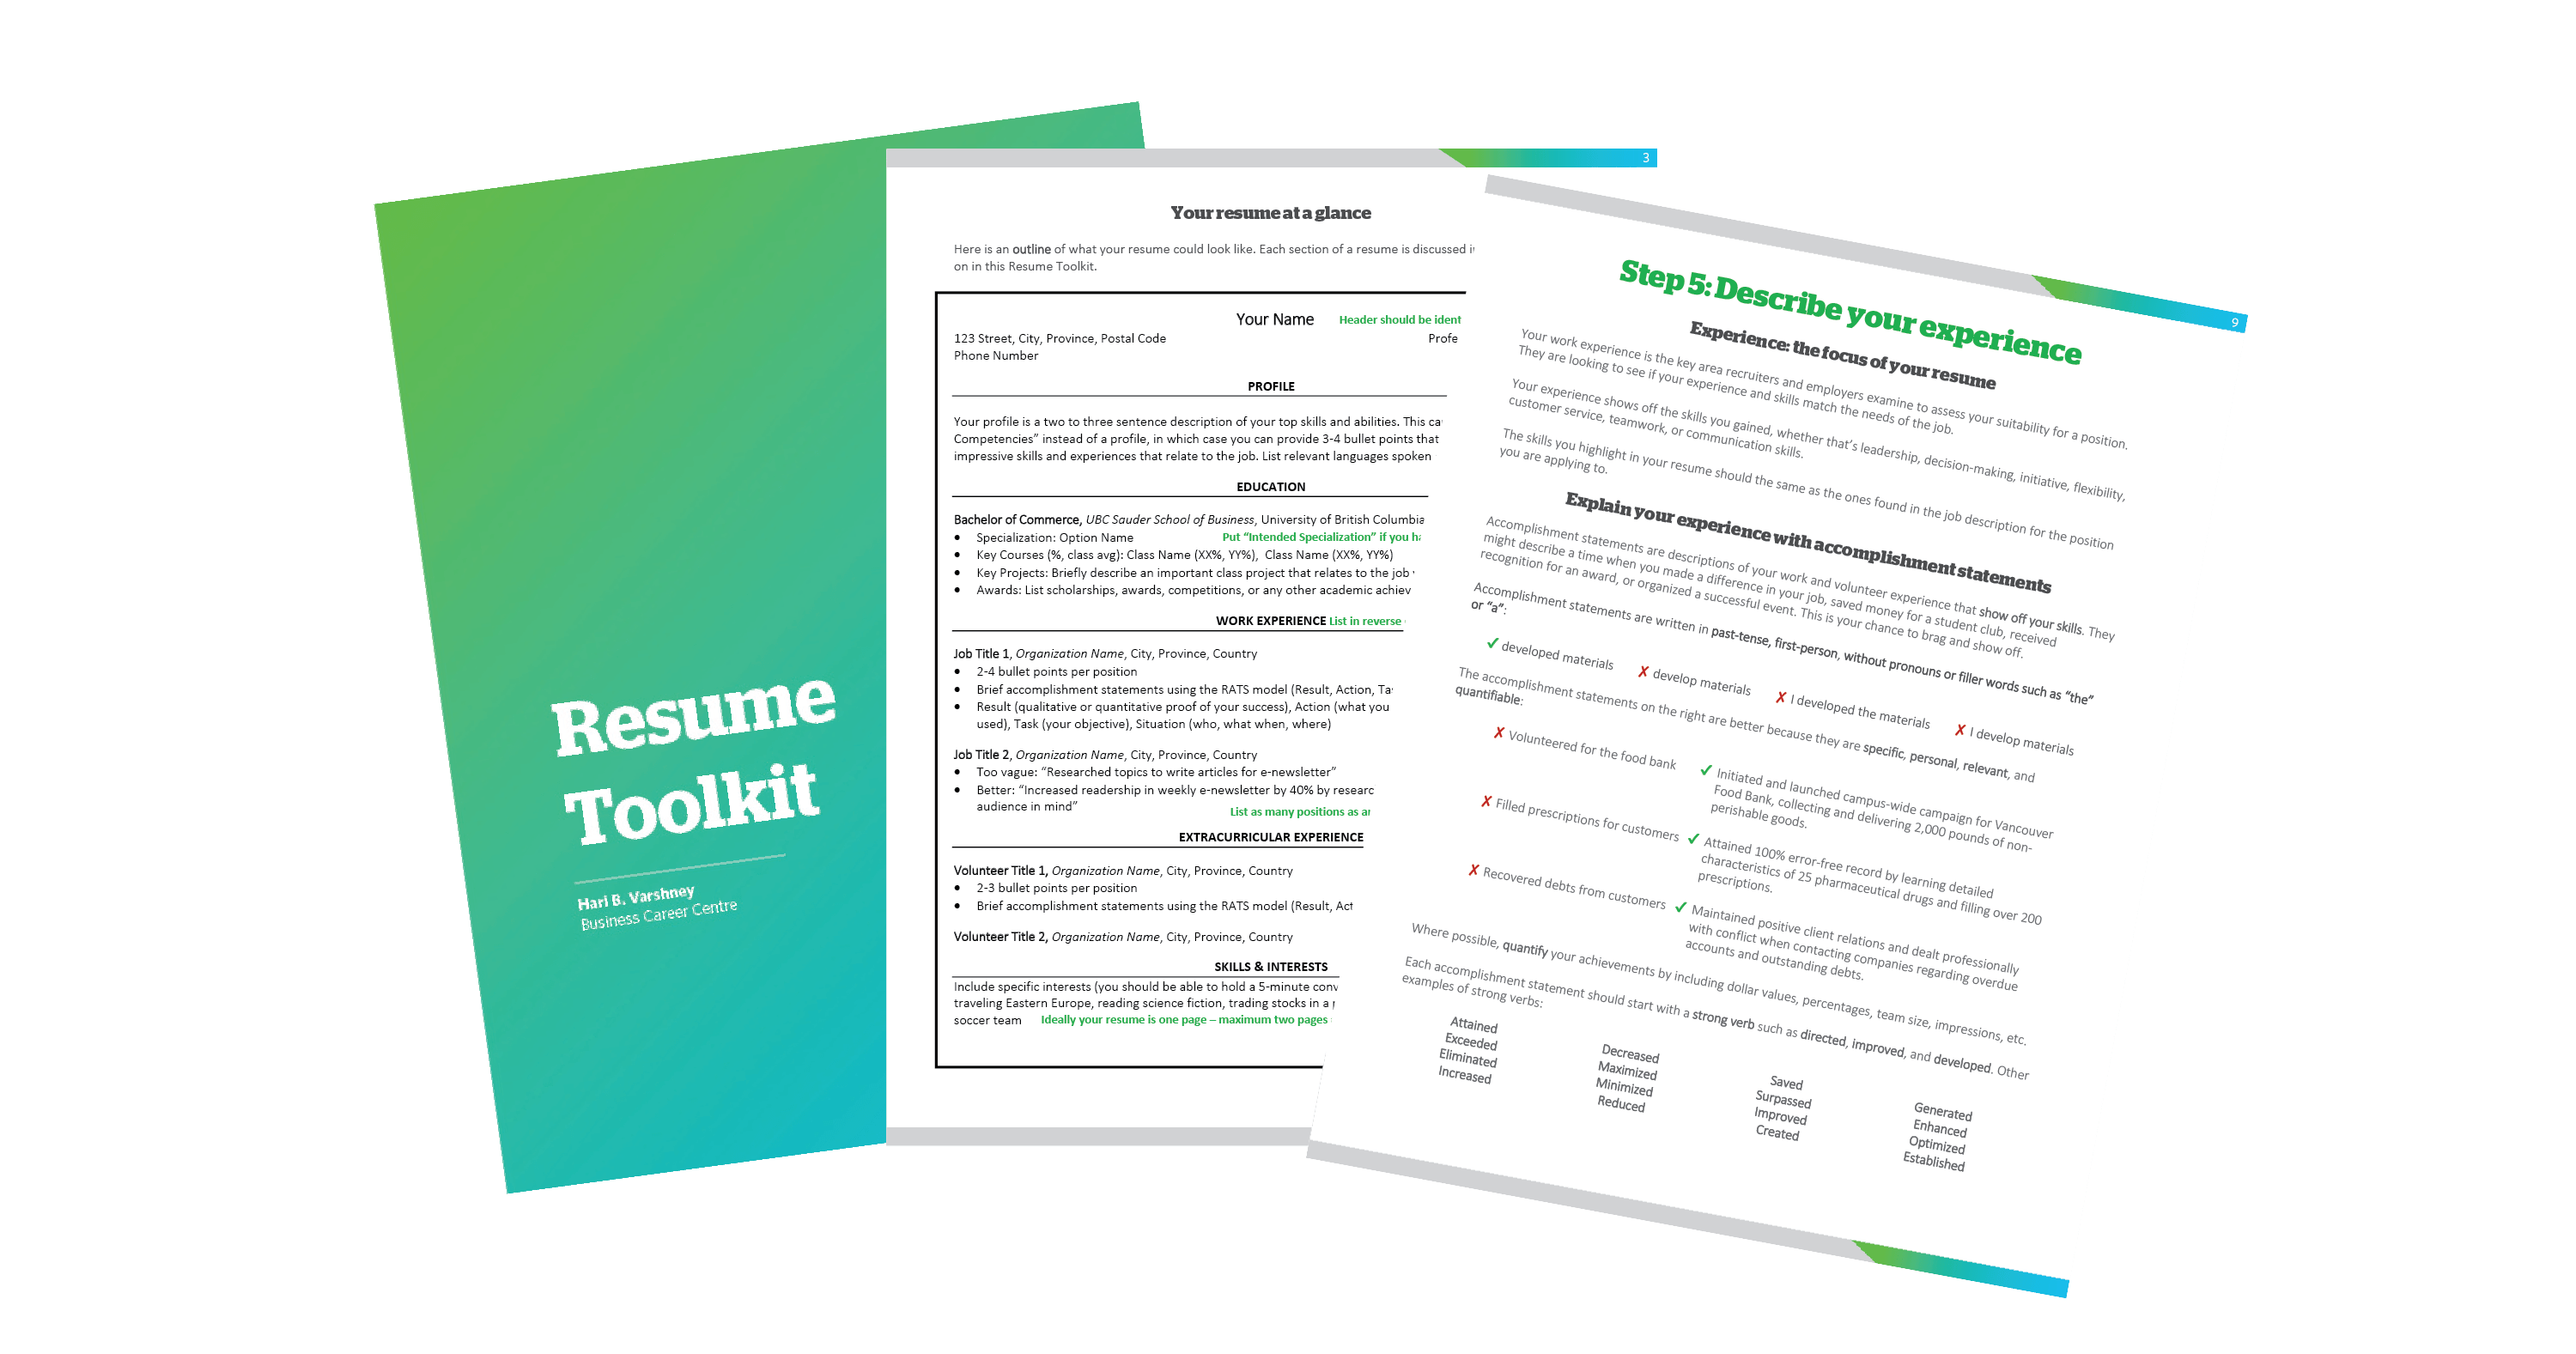 resume toolkit